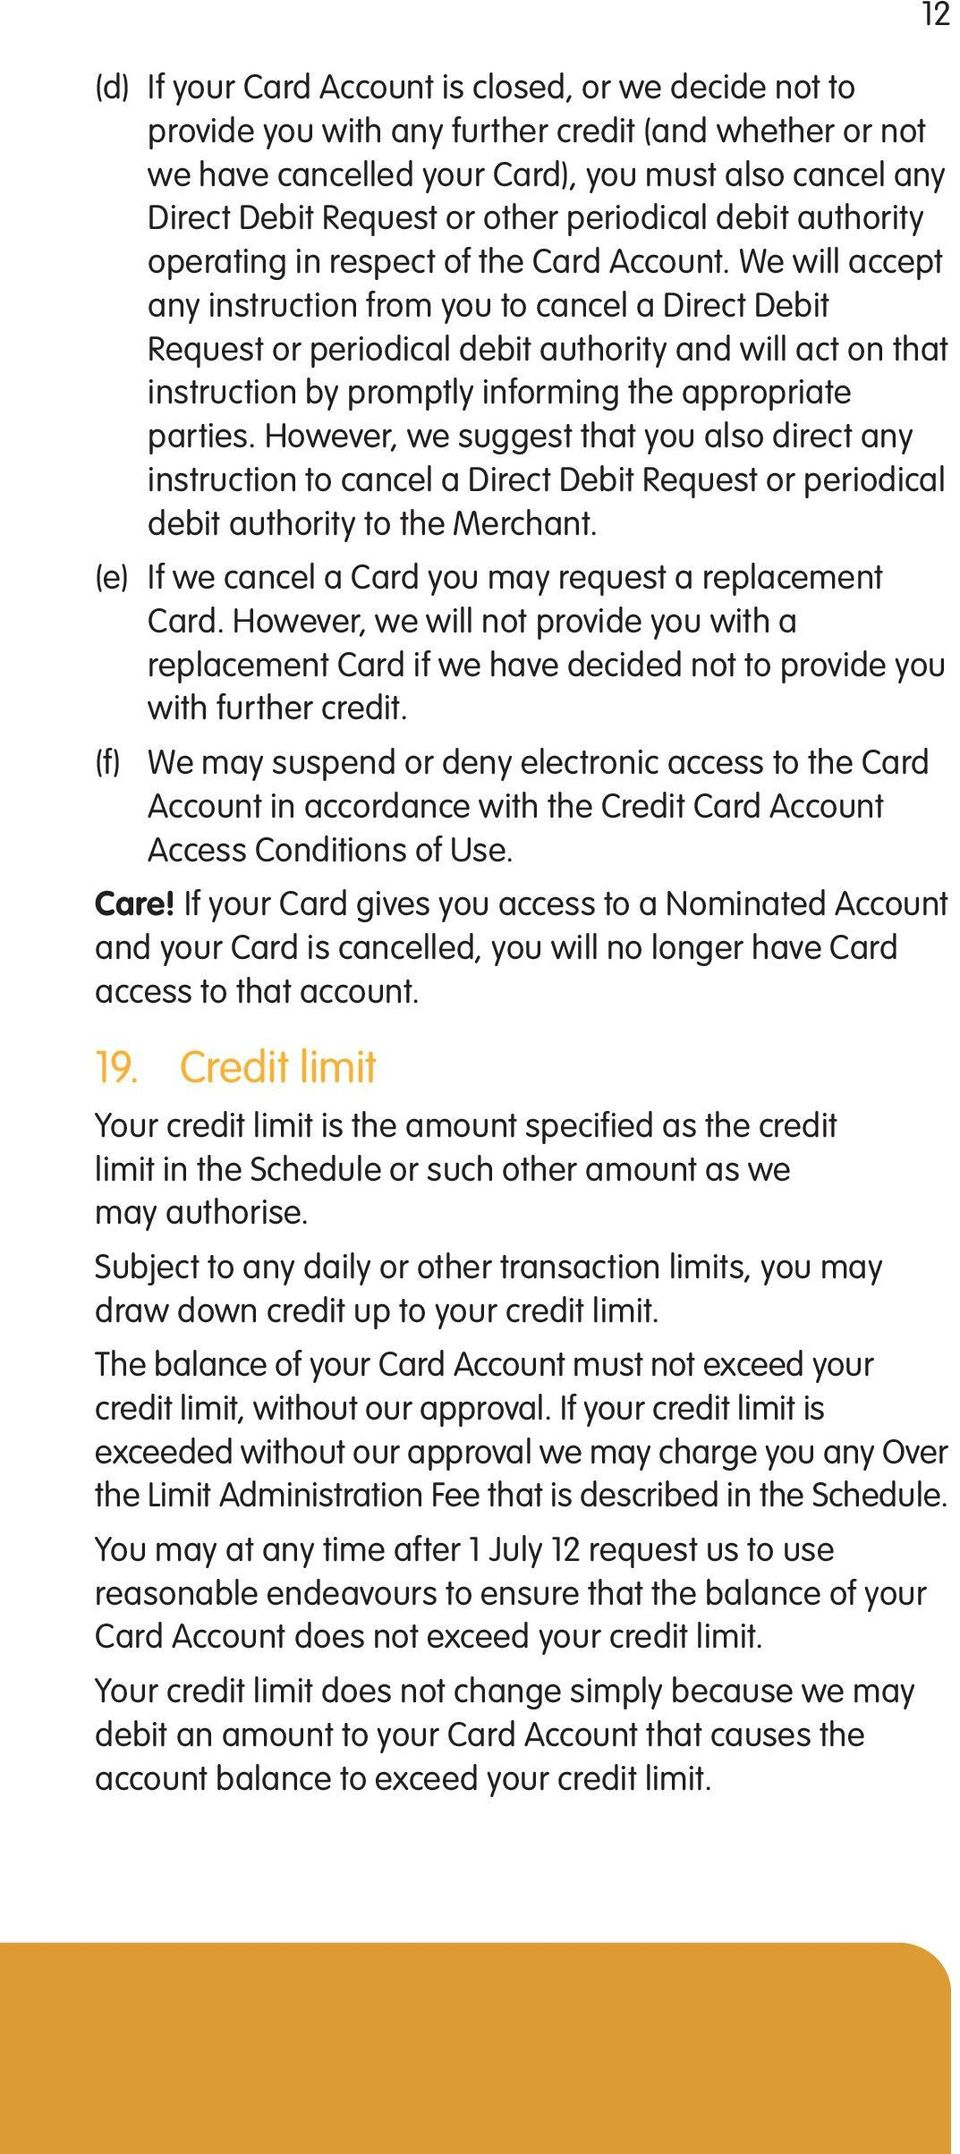 We will accept any instruction from you to cancel a Direct Debit Request or periodical debit authority and will act on that instruction by promptly informing the appropriate parties.